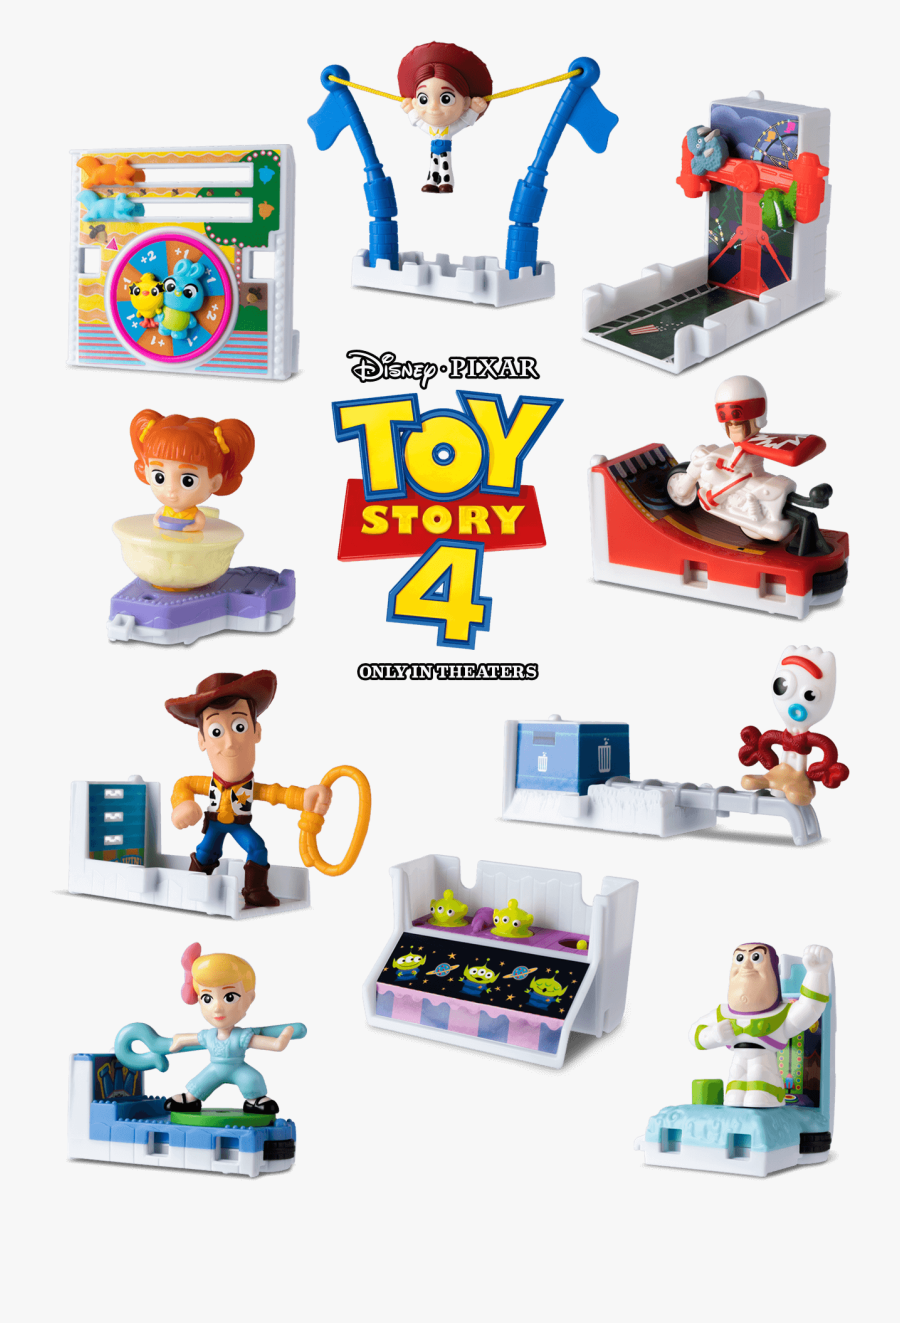 Transparent Kids Playing With Toys Clipart - Toy Story 4 Mcdonalds Toys, Transparent Clipart